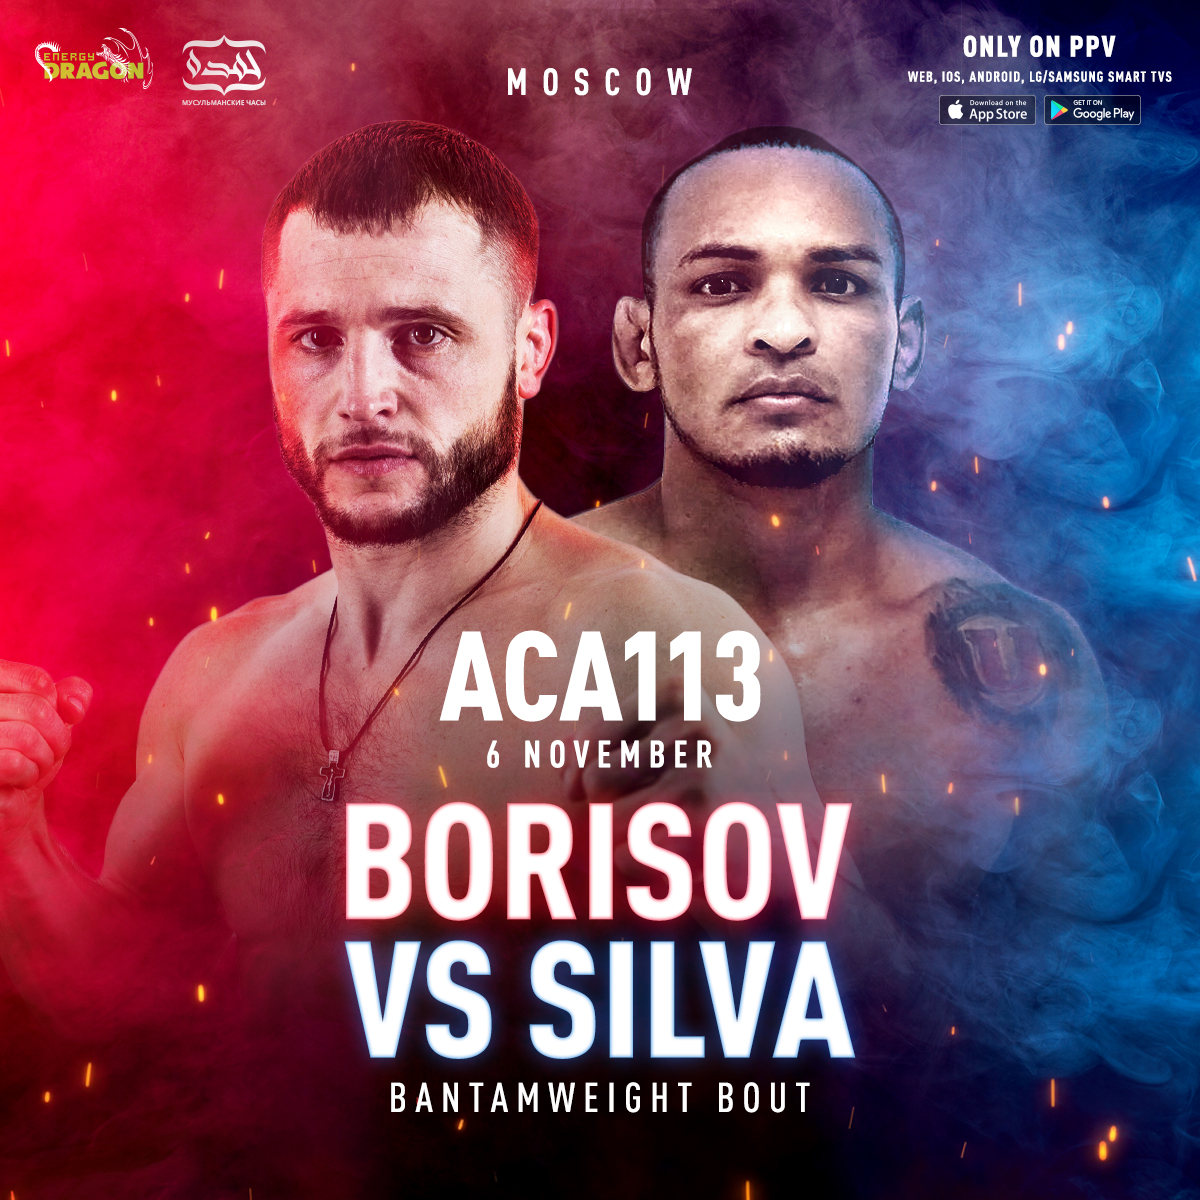 Bantamweight bout: Oleg Borisov vs. Cleverson Carrilho on ACA 113. Both have a large number of early victories, so don't miss the spectacular finish! https://t.co/tAGjk2L0cy